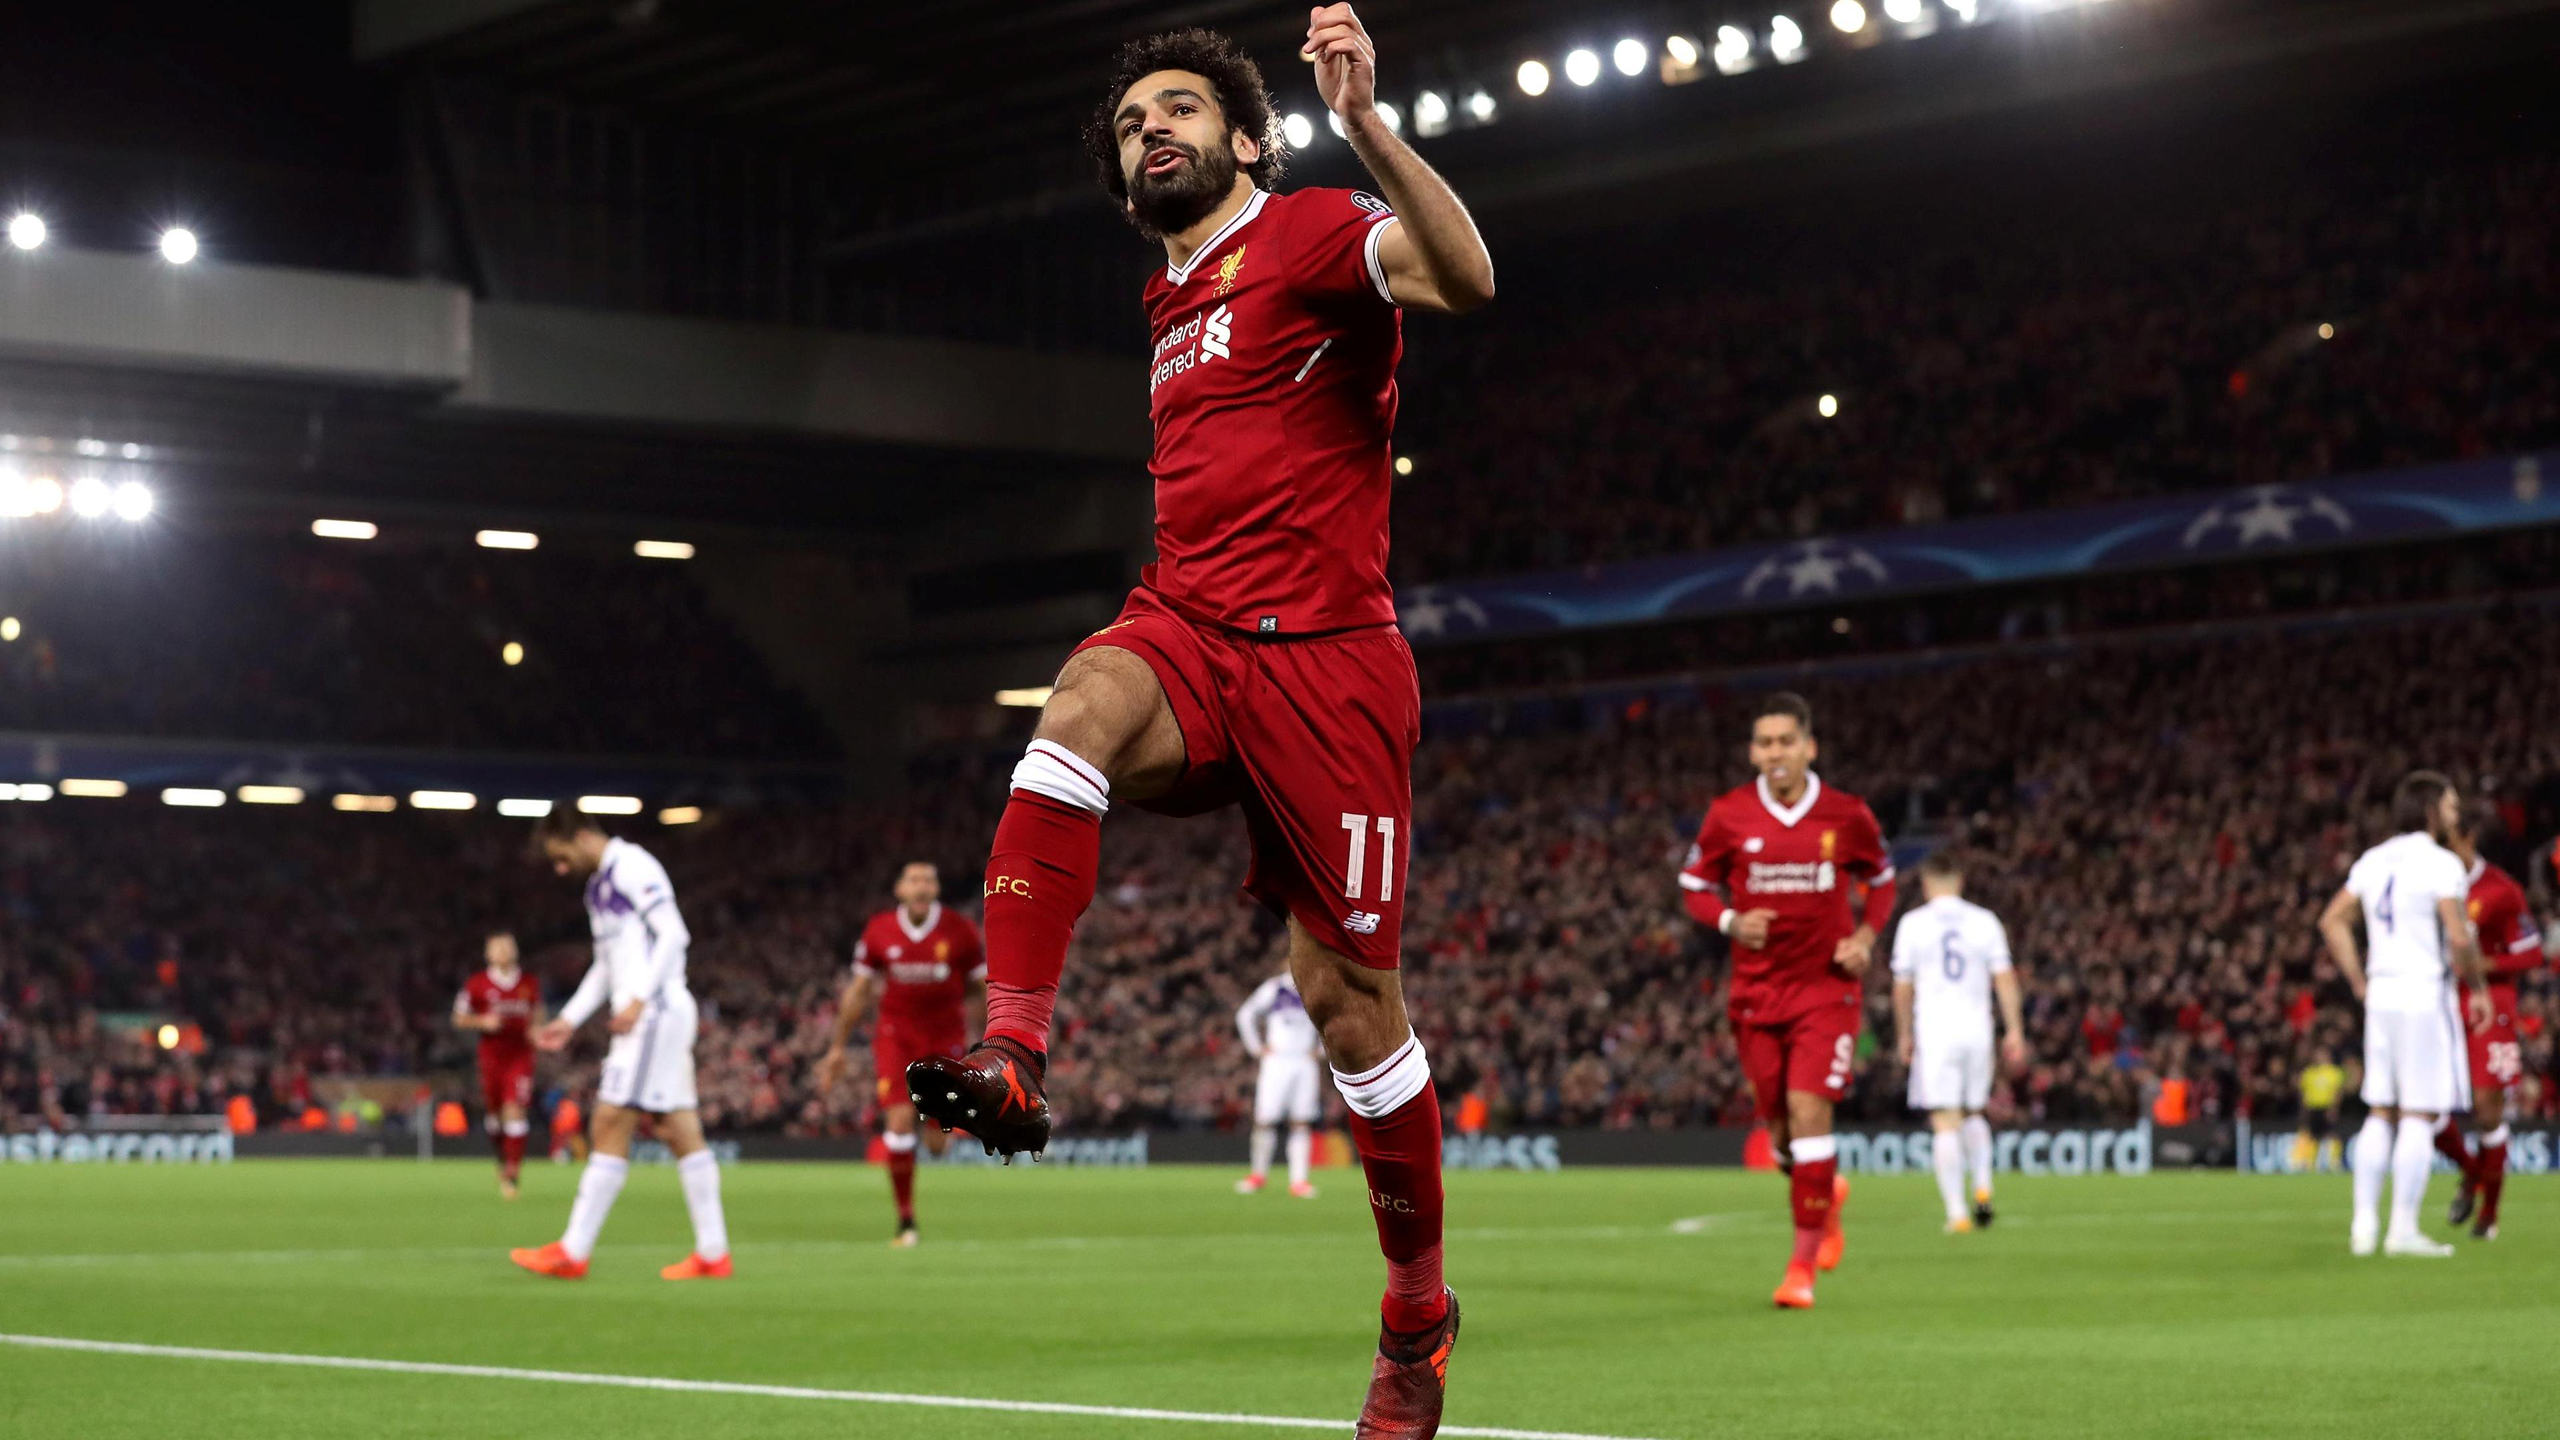 Mohamed Salah HD Wallpaper